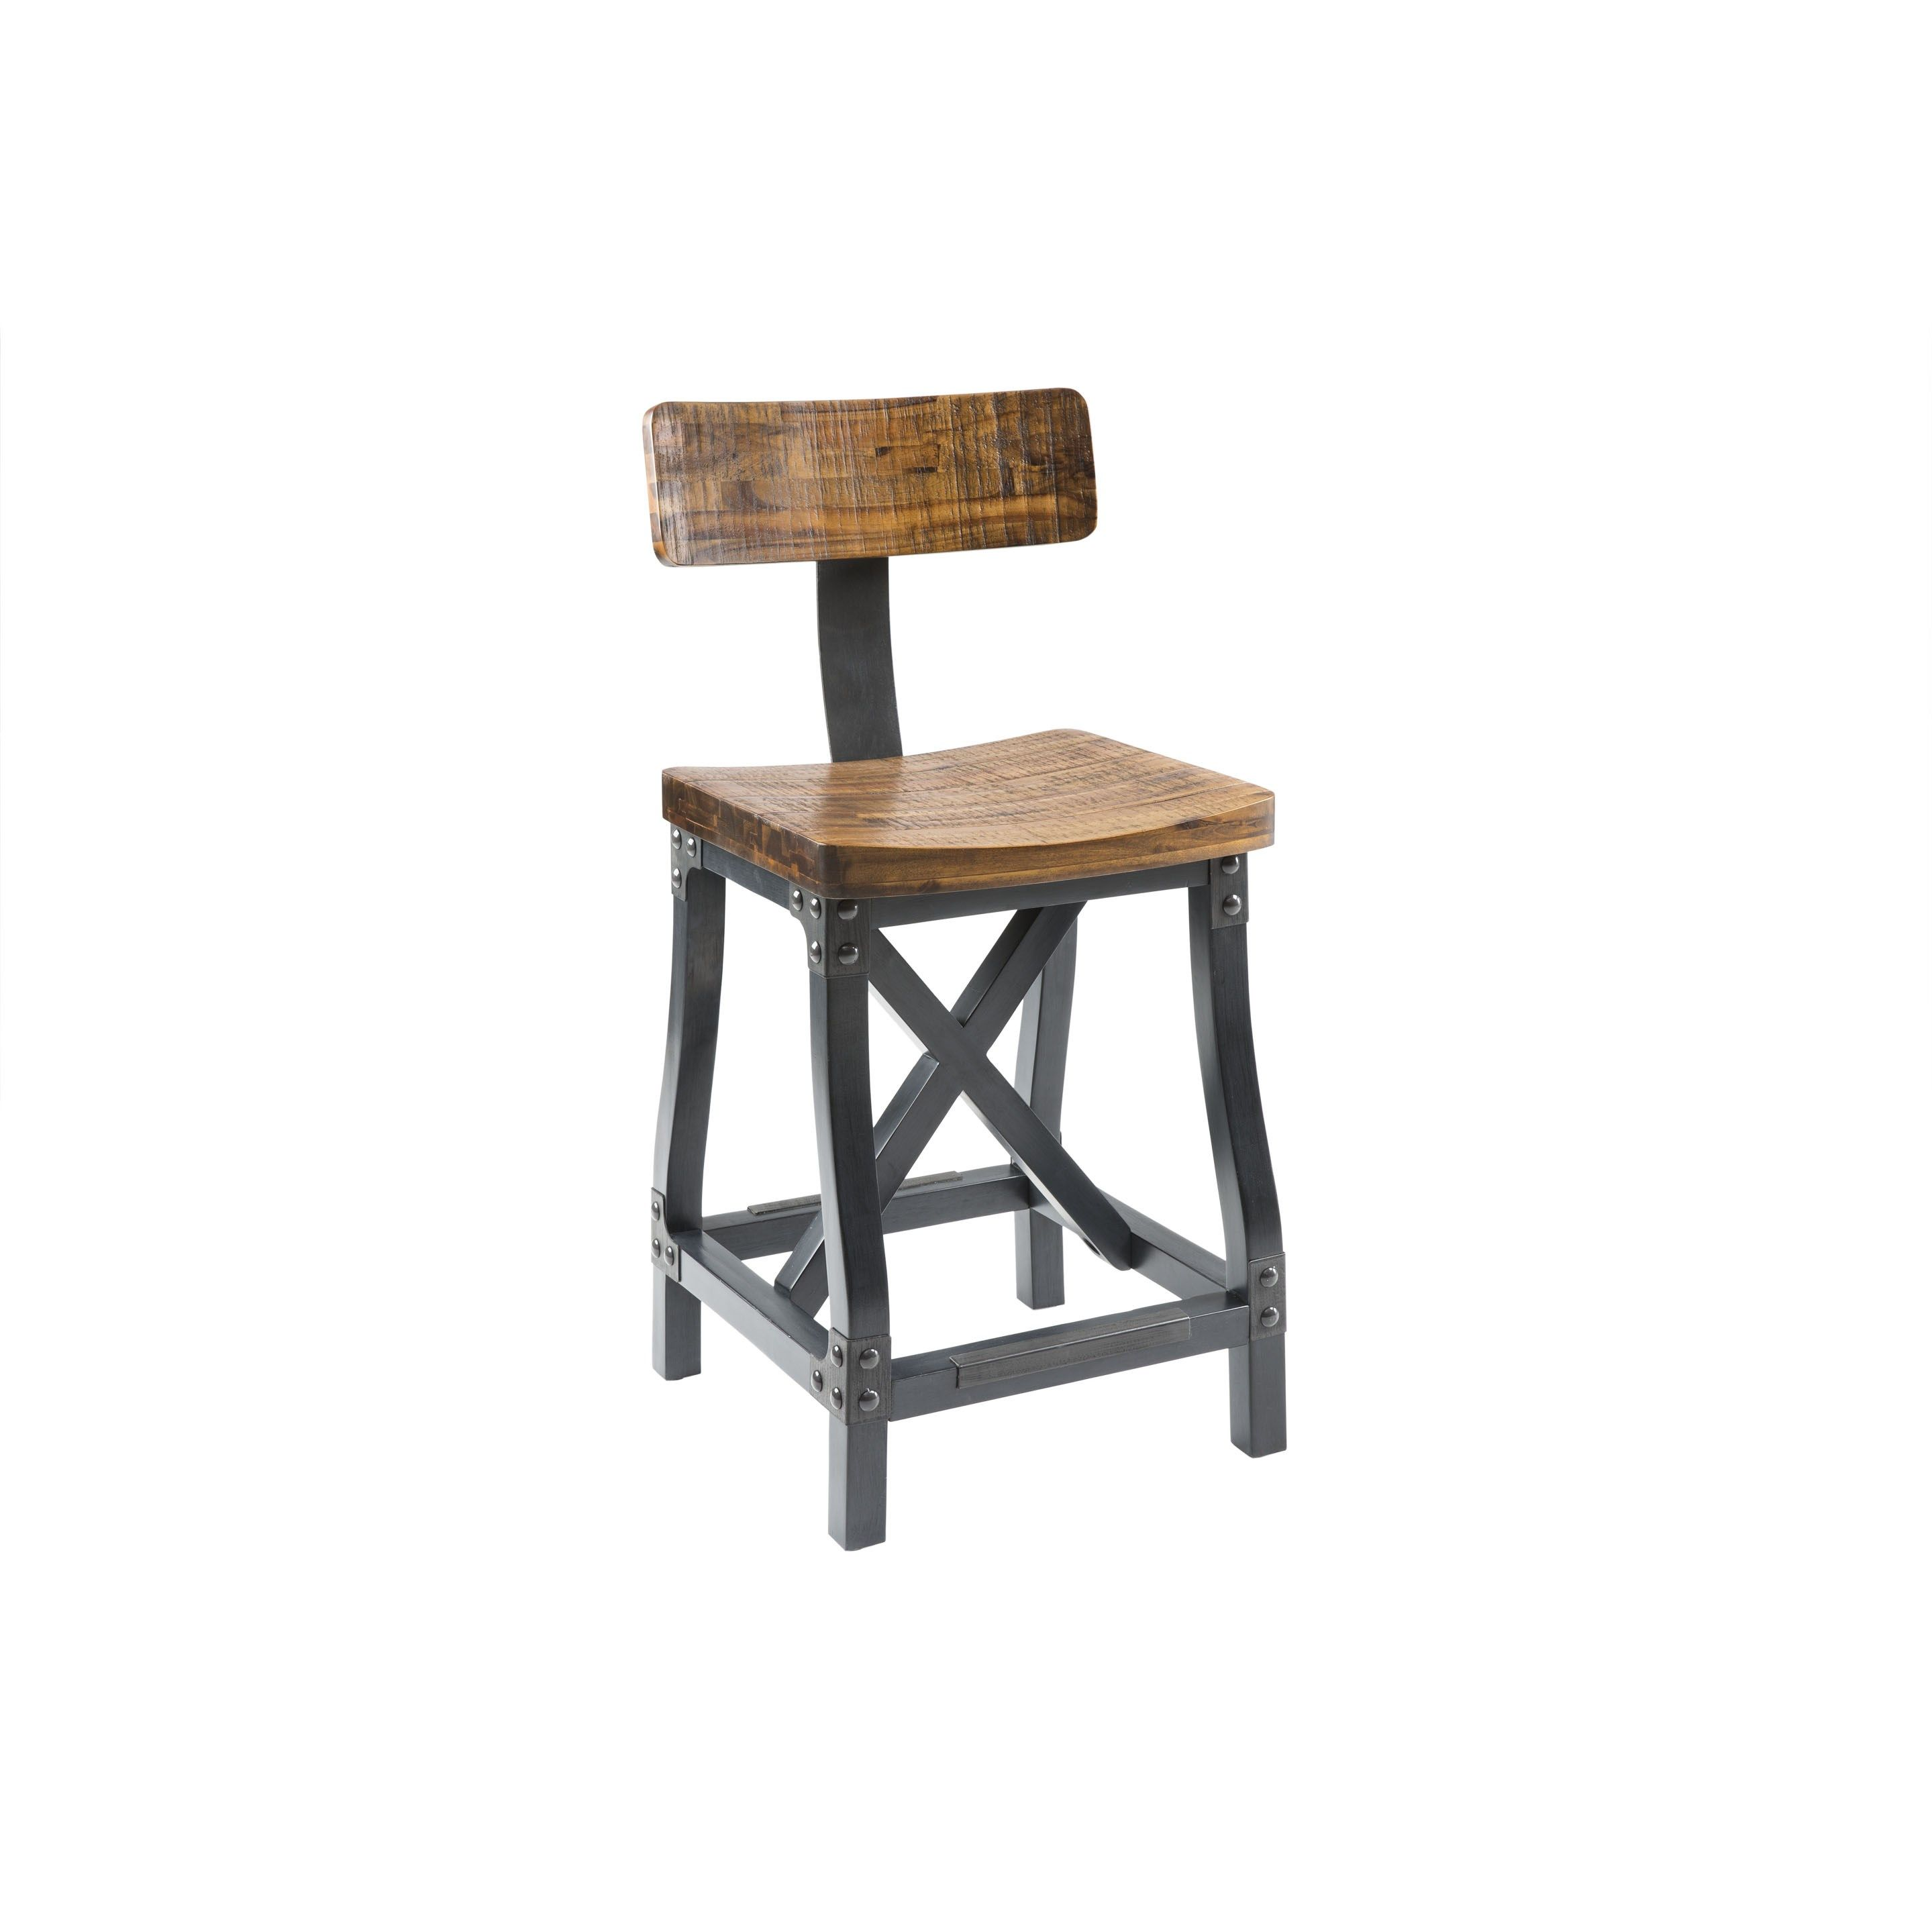 with black fabric legsolstered inspiring fancy chairs backs ivory upholstered rustic counter inch endearing stools stool arms swivel bar and height furniture pub leather